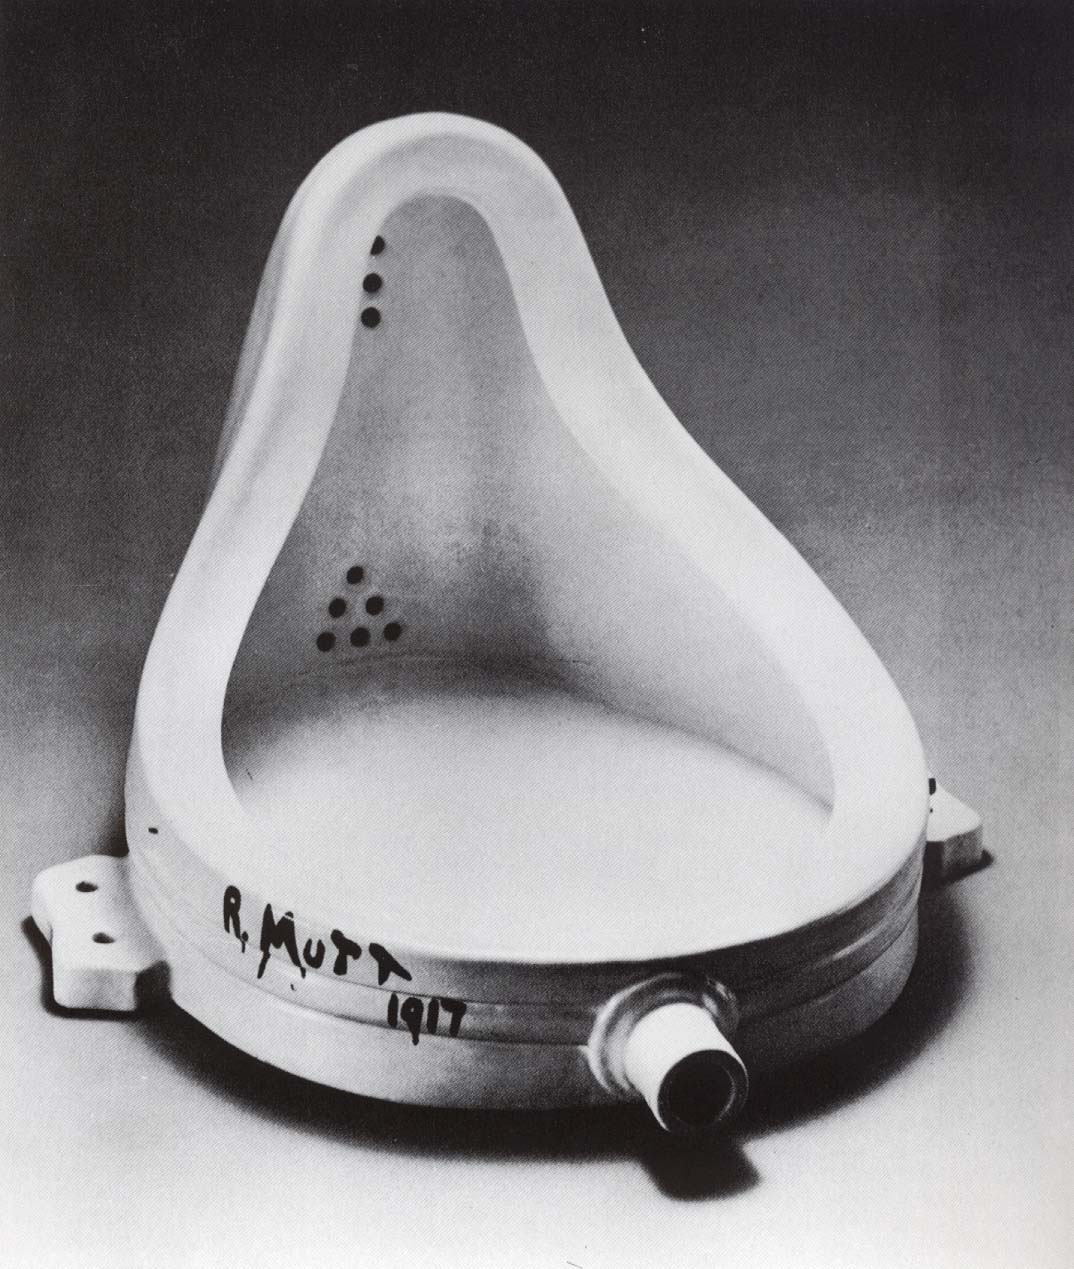 https://i0.wp.com/upload.wikimedia.org/wikipedia/commons/c/ce/Marcel_Duchamp.jpg